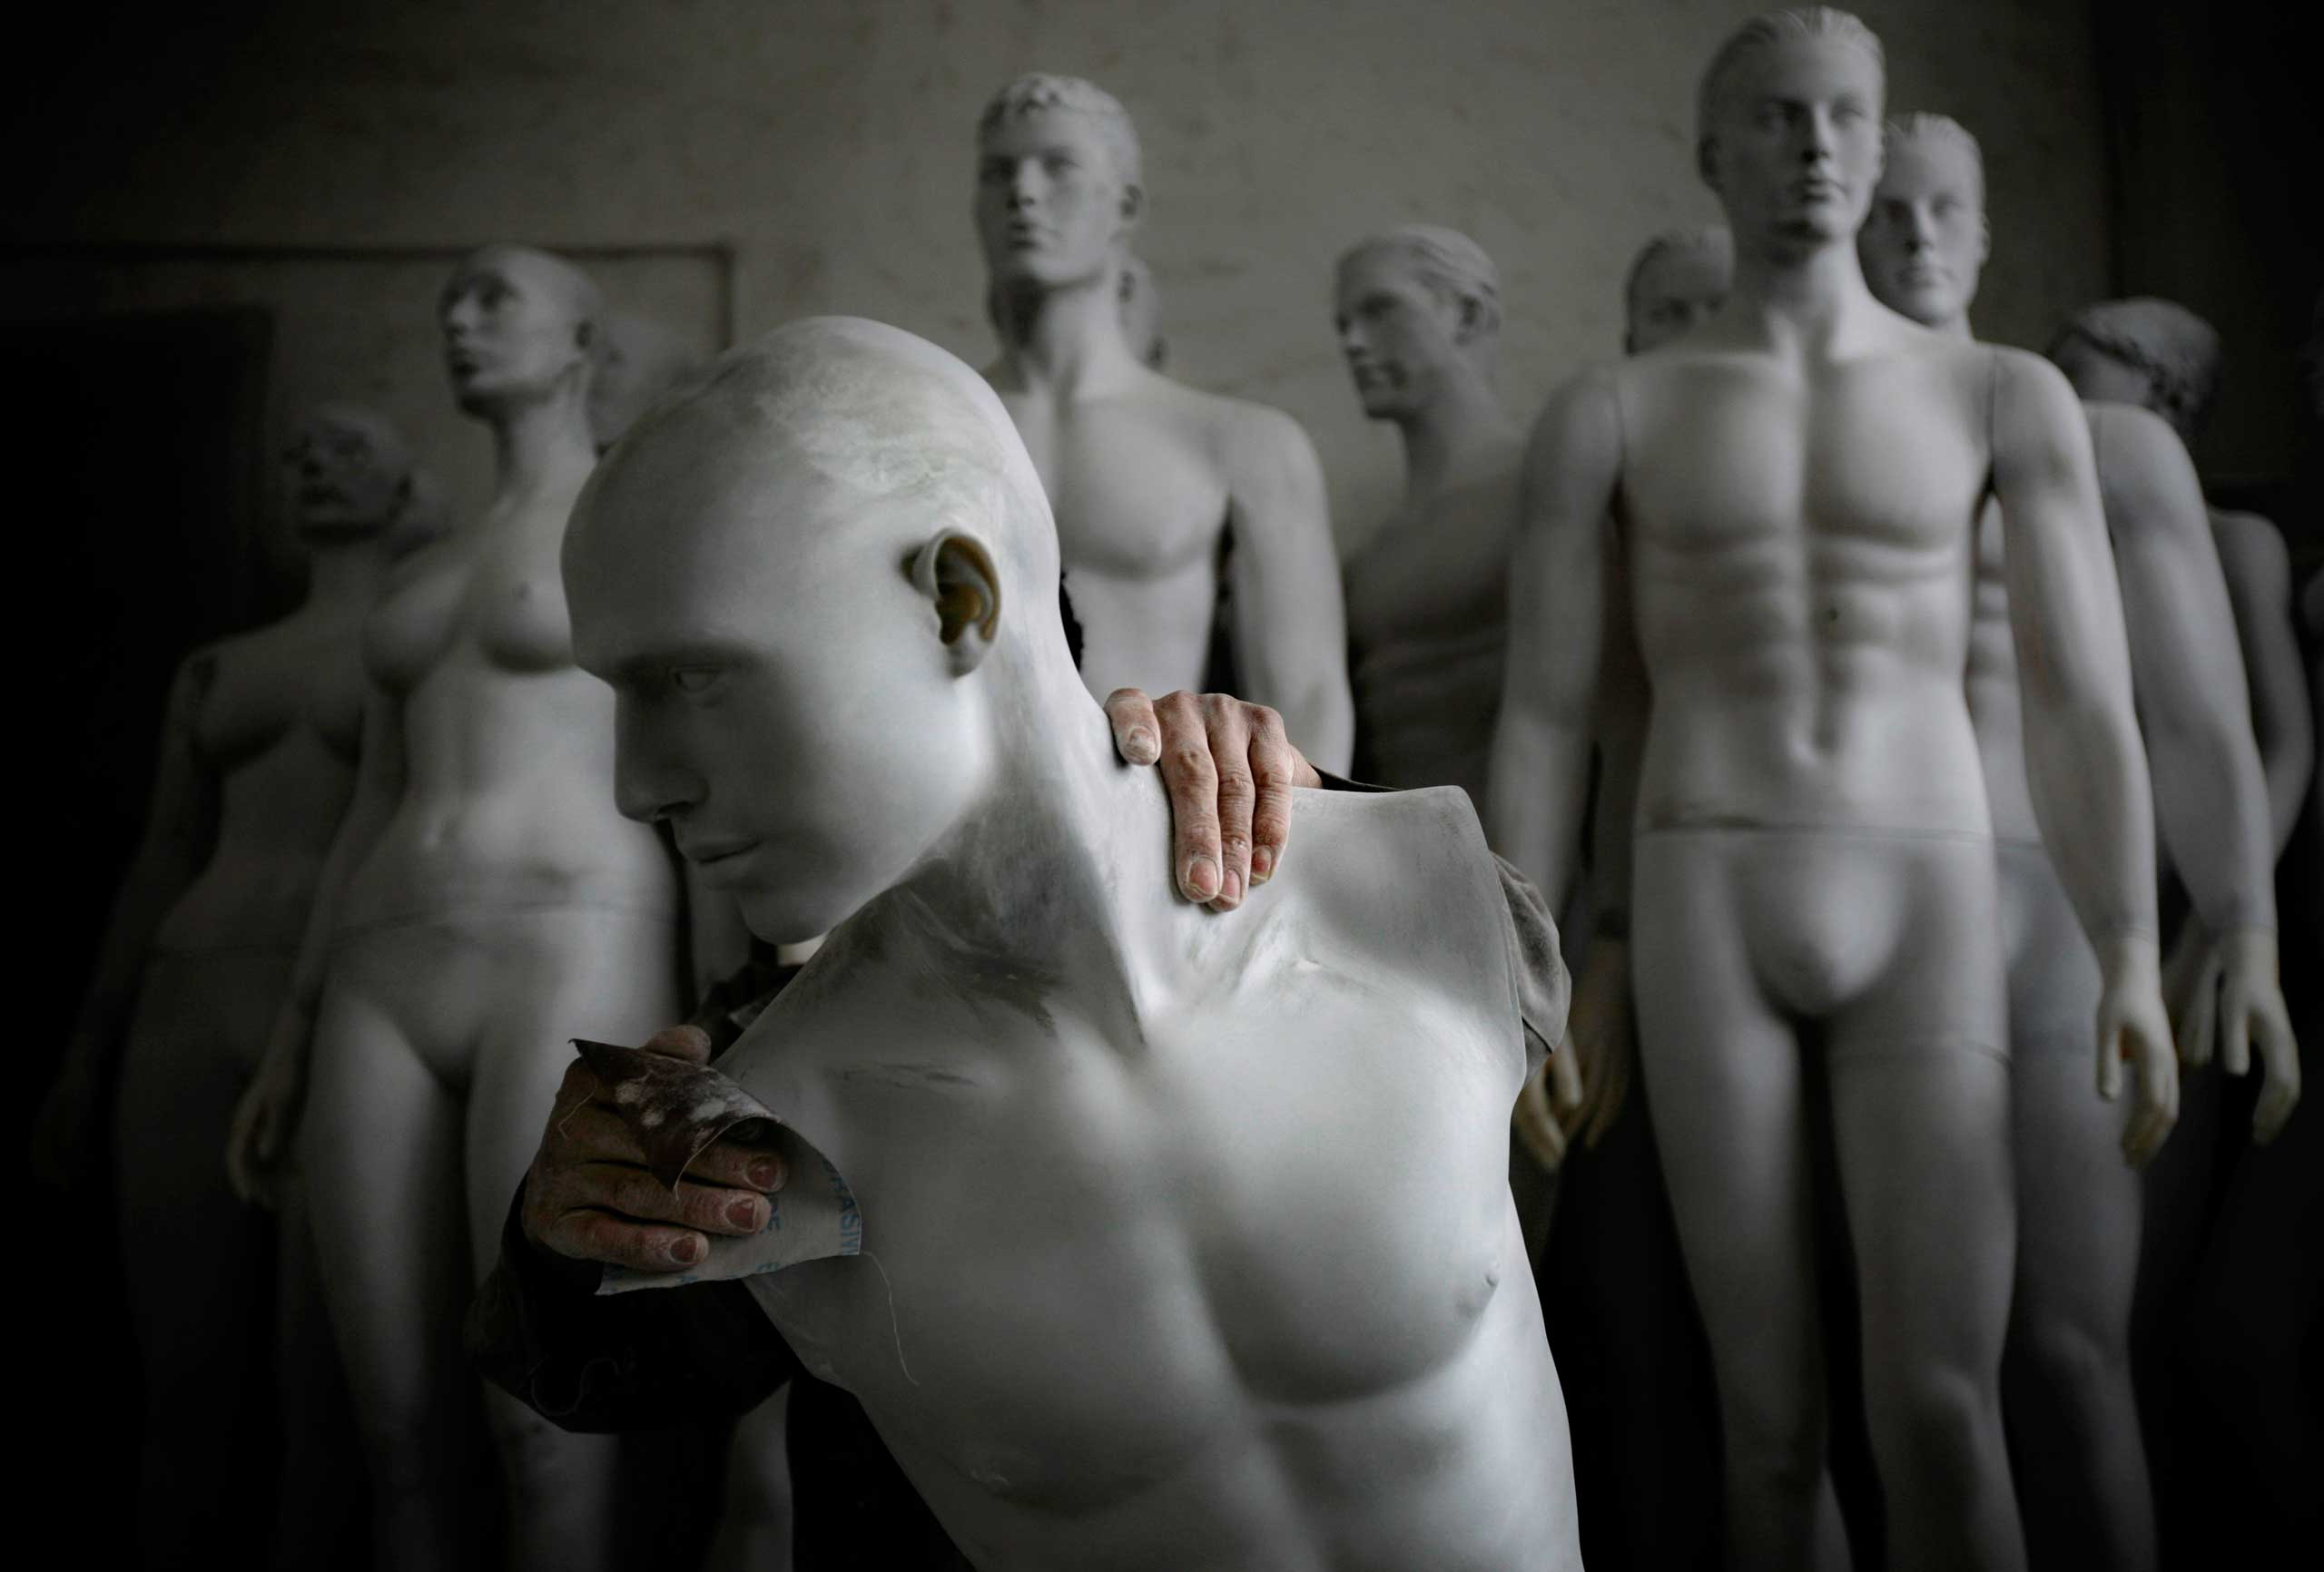 A Lucky Human mannequin factory employee polishes a mannequin, in the booming southern Chinese city of Shenzhen. The factory produces around 25,000 mannequins a year, mainly for export to Europe and the United States.